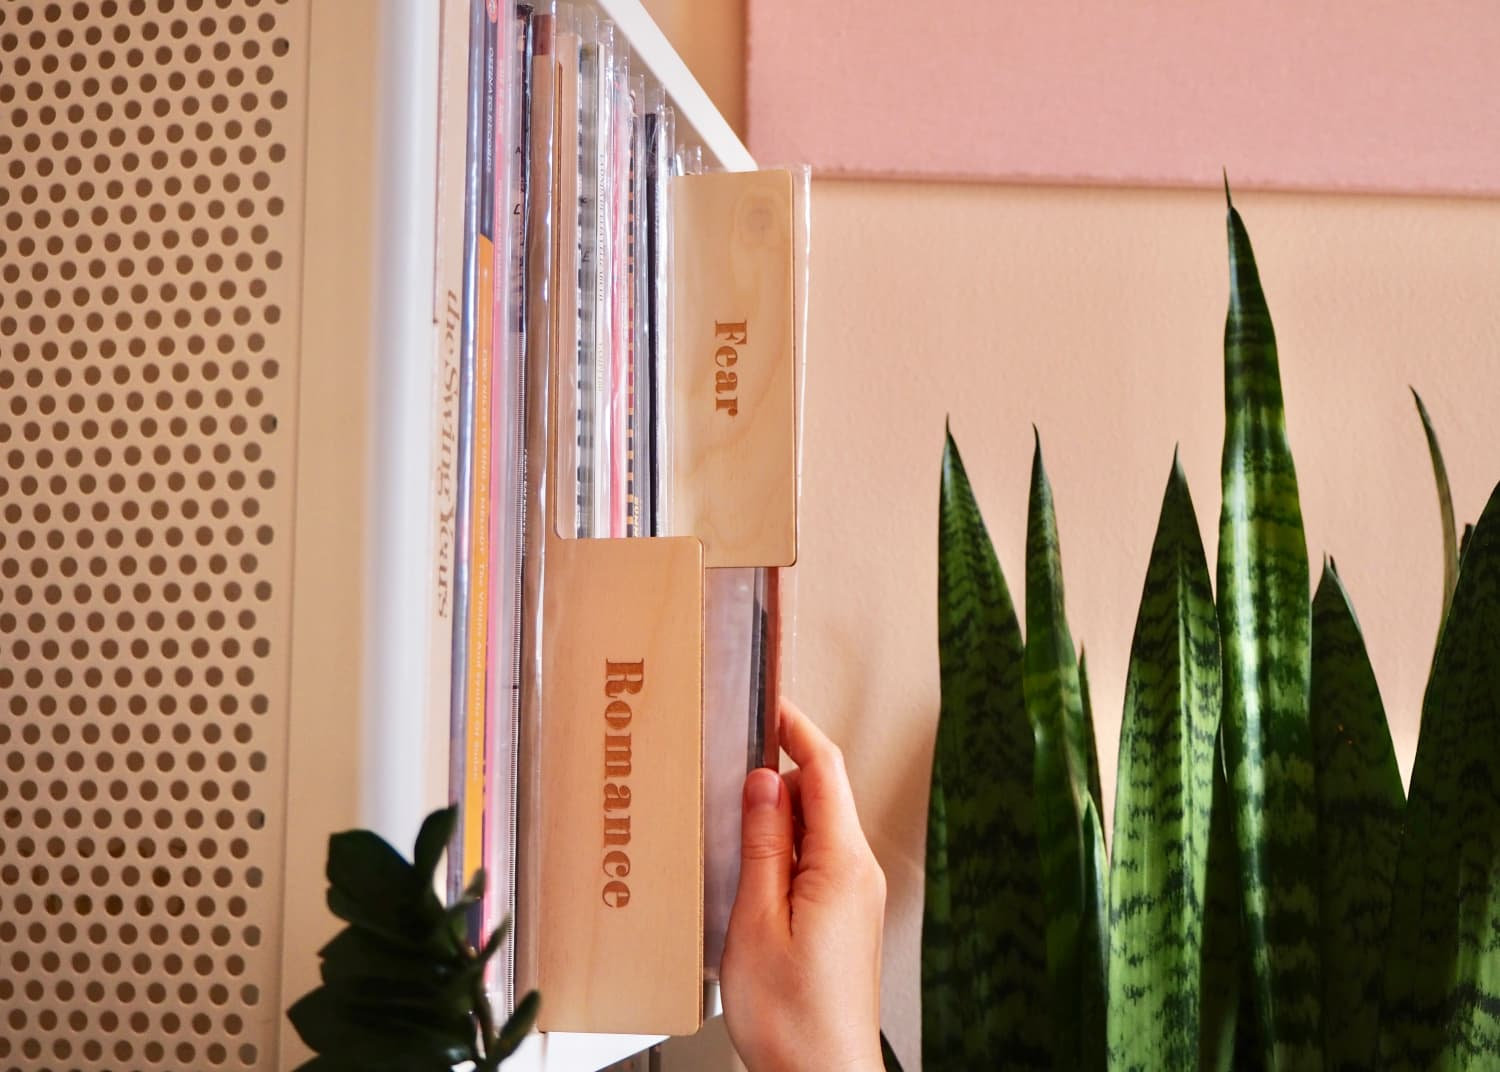 These Wooden Record Dividers Let You Sort Your Collection By Feelings